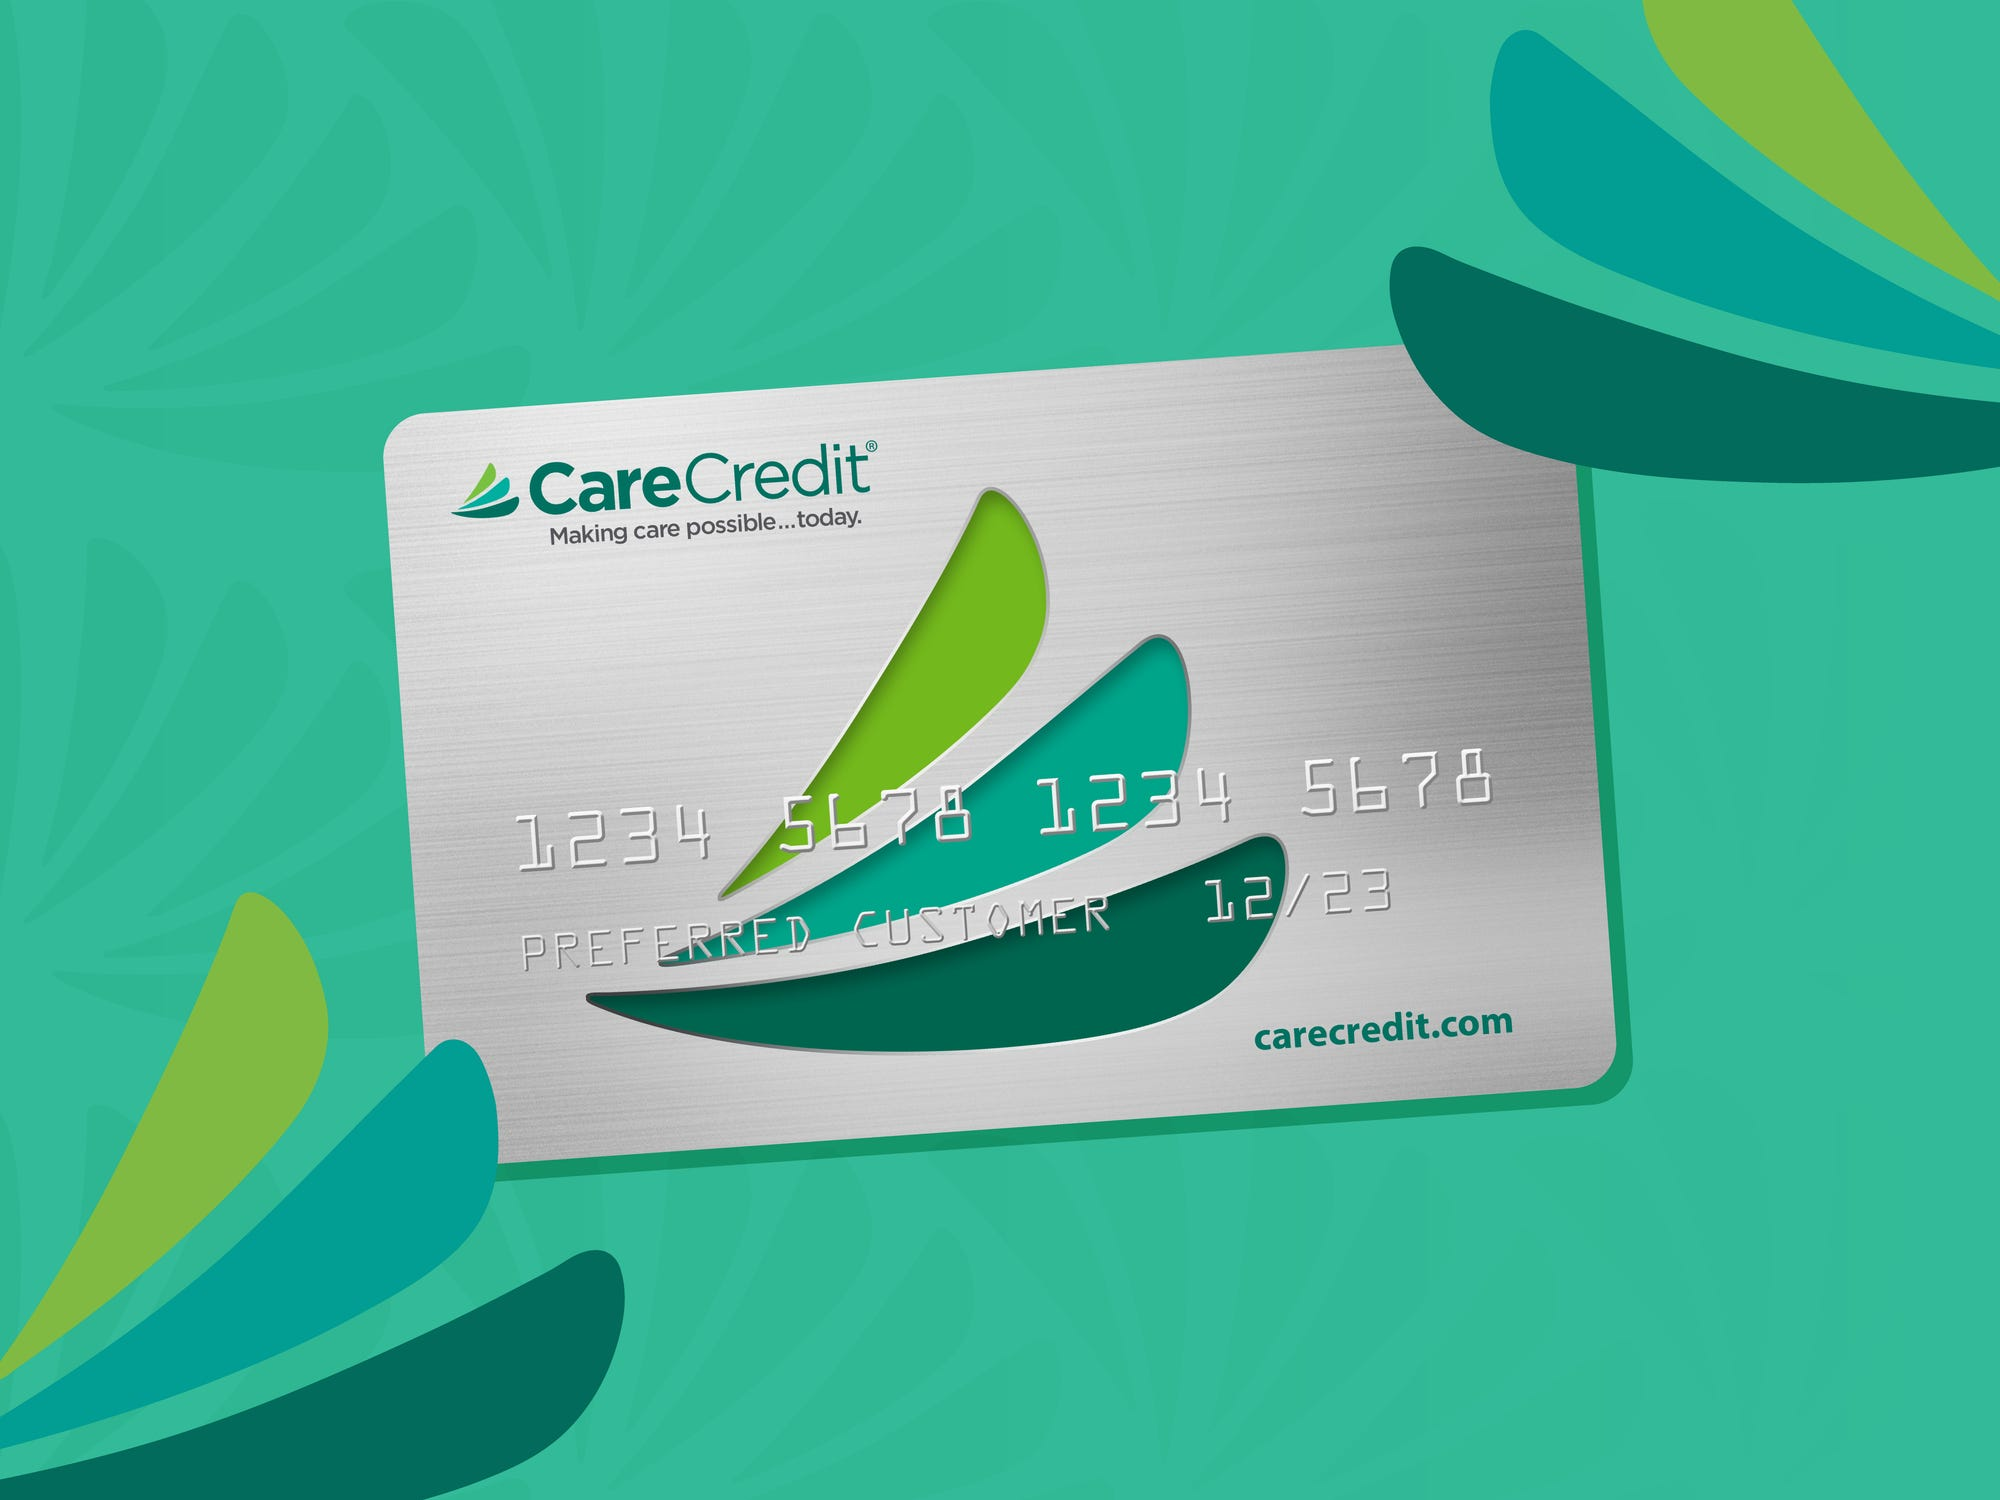 A CareCredit card can be used to cover the cost of dental fillings